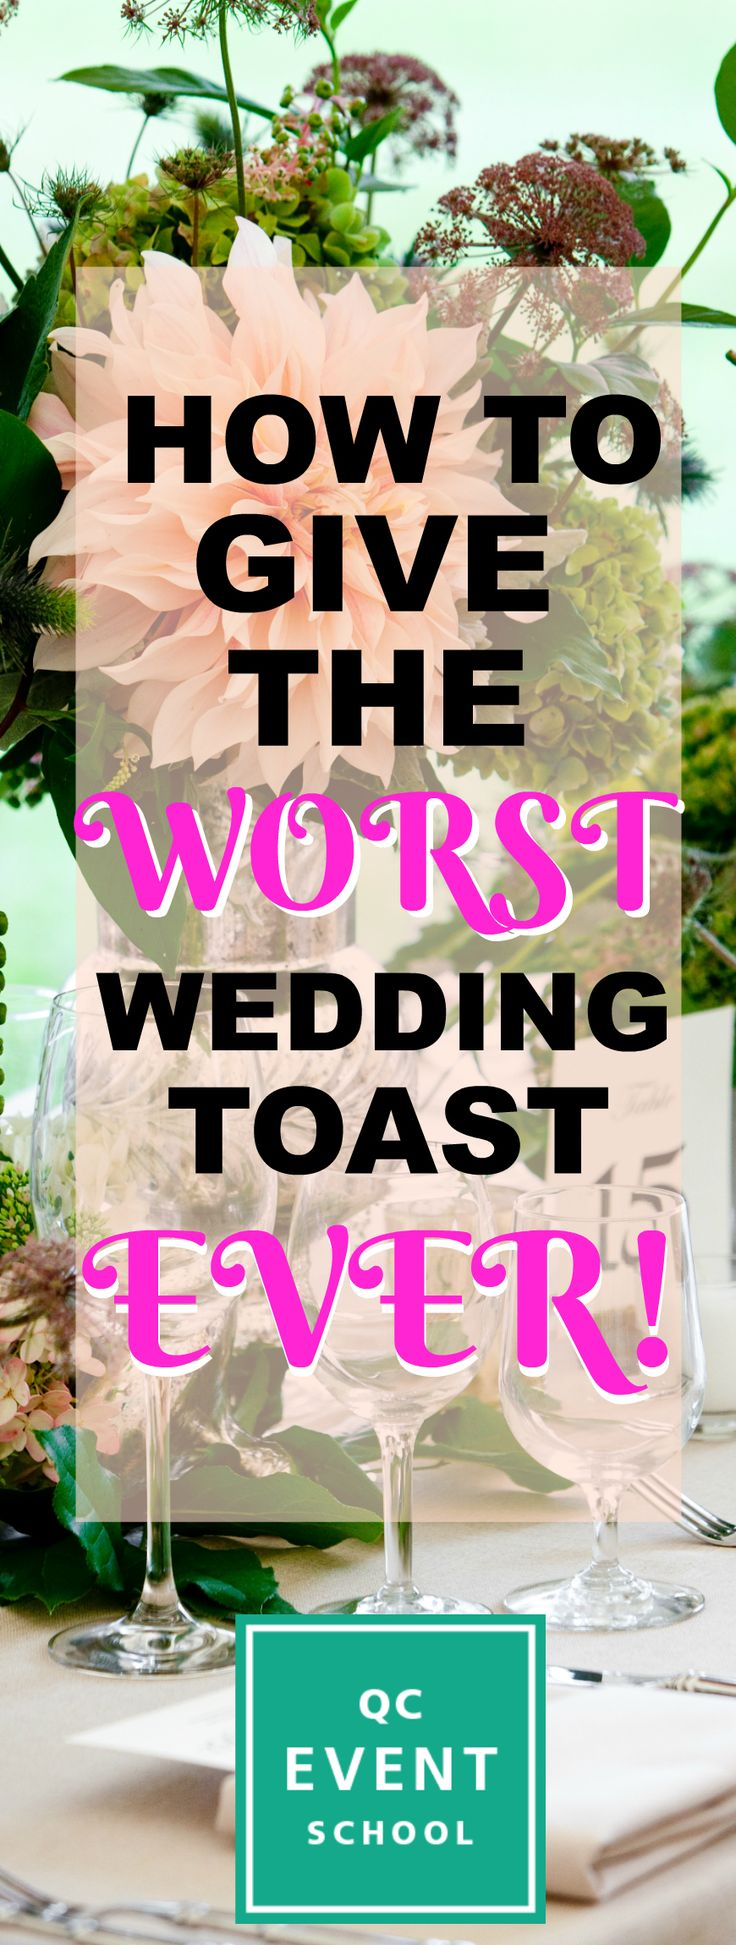 Wedding toasts are usually given to congratulate the newlywed couple on their union, but it's really about YOU (the MOH or Best Man)! Read on to find out how to give the best wedding toast that will definitely get you invited to every wedding for the next five years! #QCEventSchool #weddings #events #weddingplanning #weddingtoast #toast #worst #weddingfails #blog